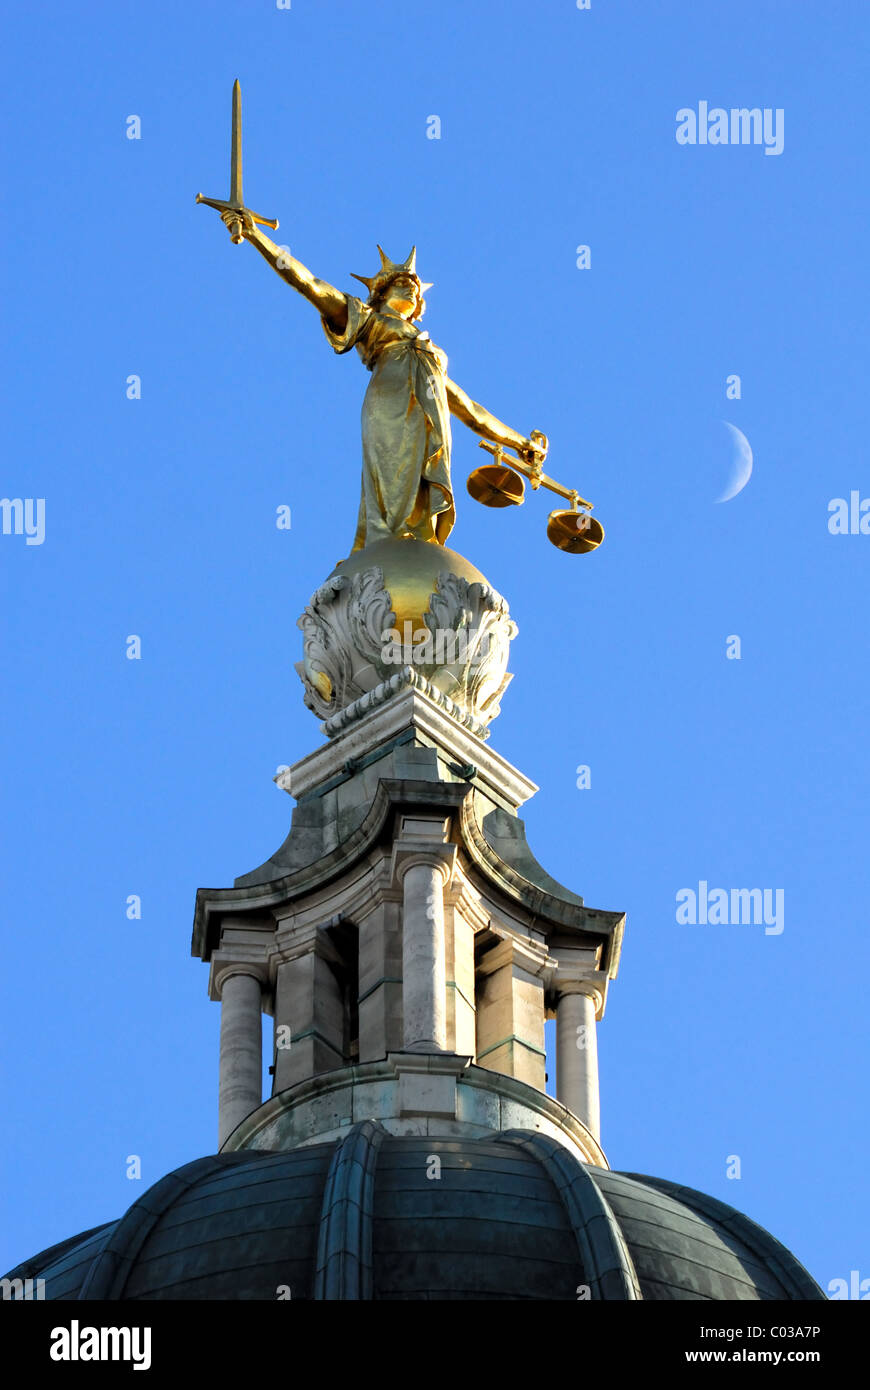 The Old Bailey Scales of Justice statue London UK - Stock Image